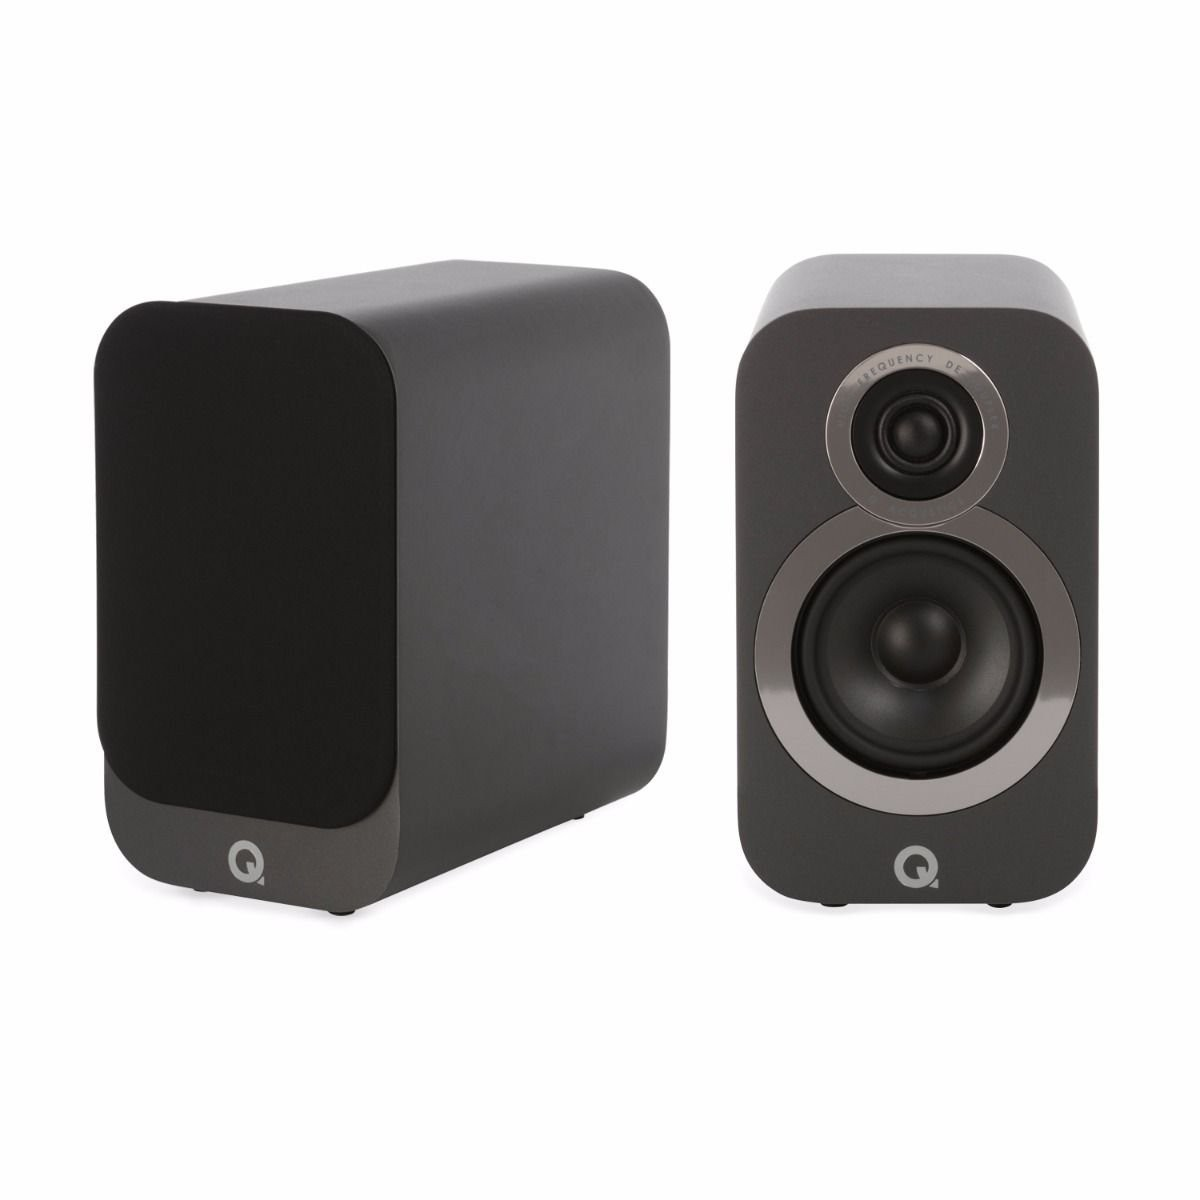 Q acoustics 3010i Bookshelf Speakers Graphite Black (pair)